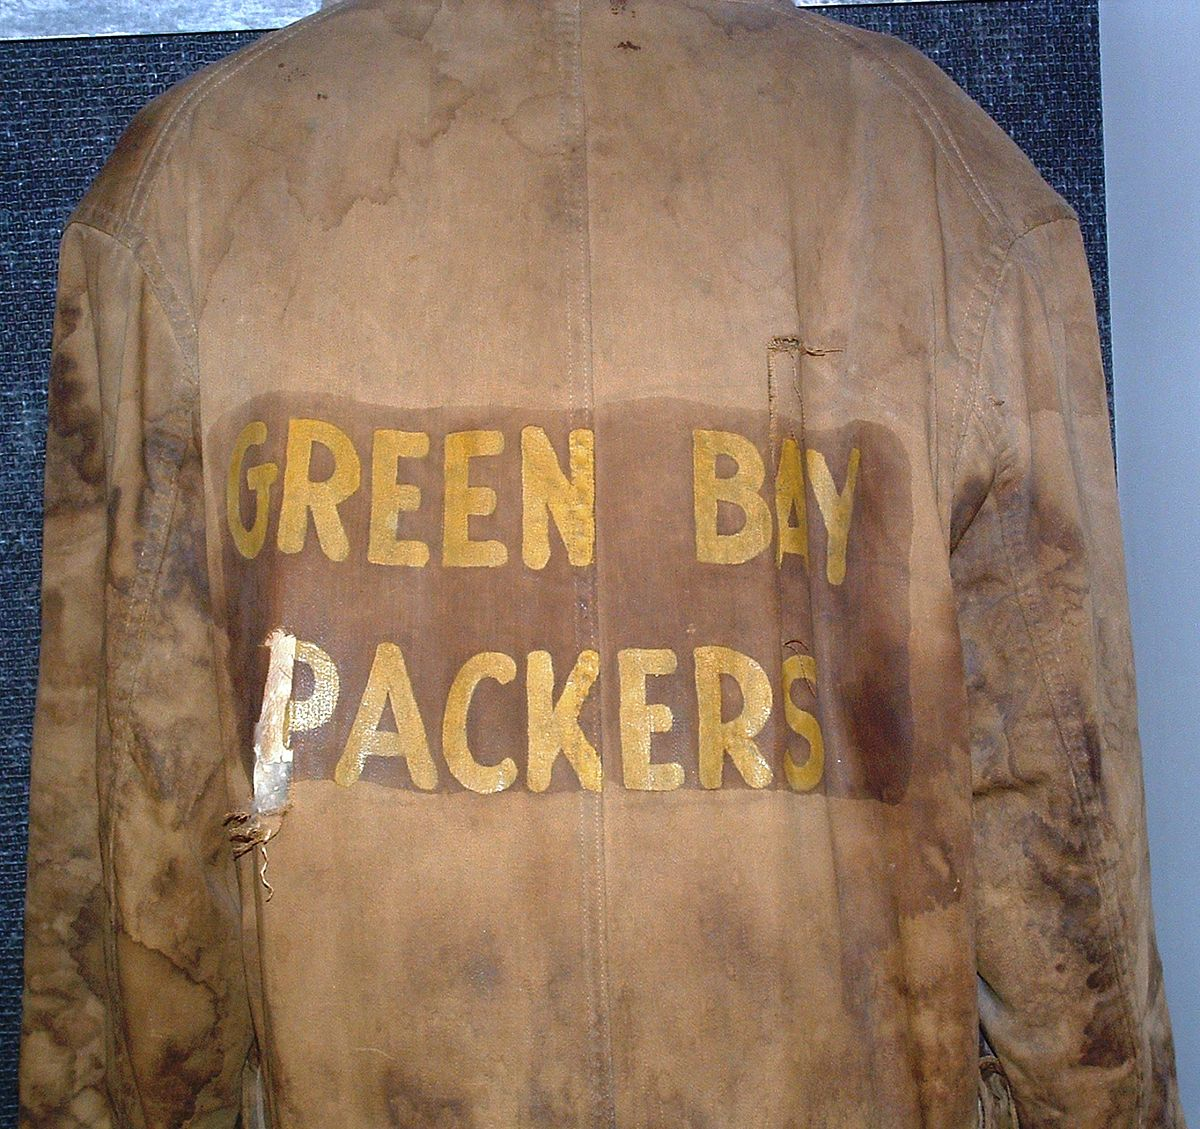 0baae7925 History of the Green Bay Packers - Wikipedia